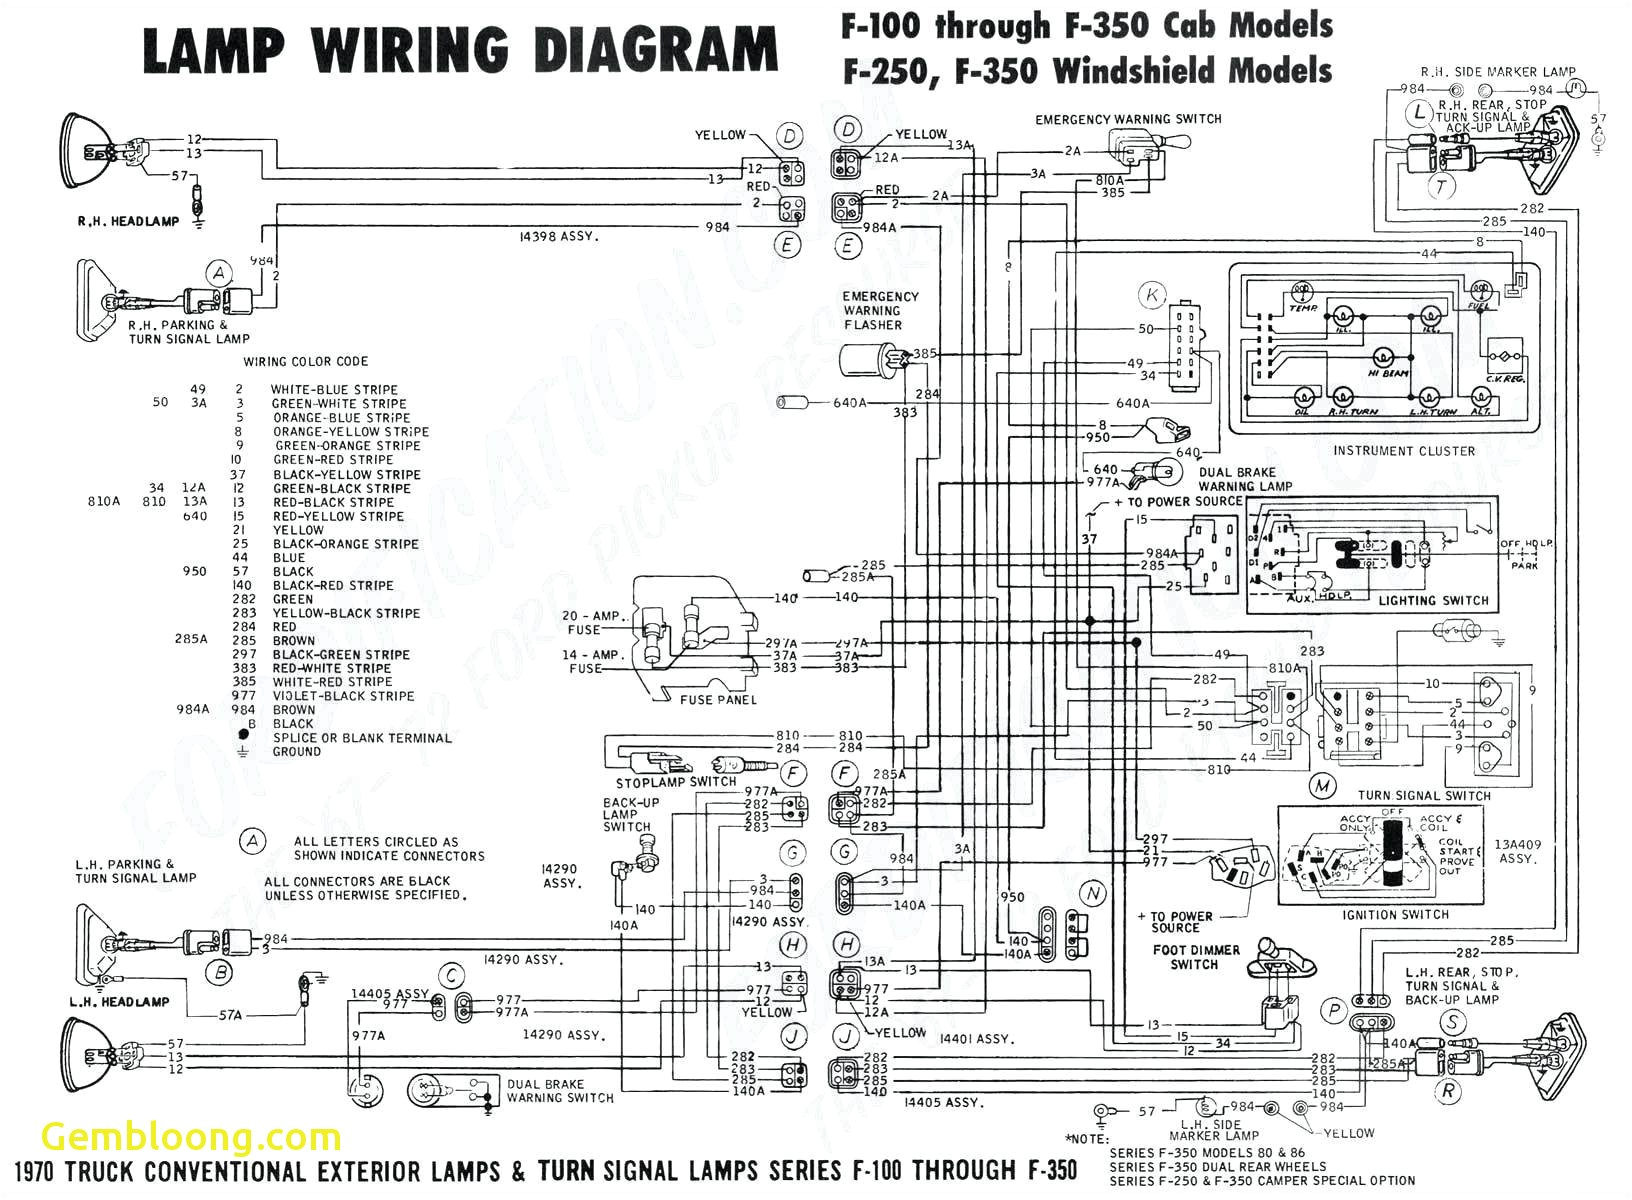 bmw lights wiring diagram wiring schematic diagram 97 you are getting power to pin 9 bk yl wire when your lights are on